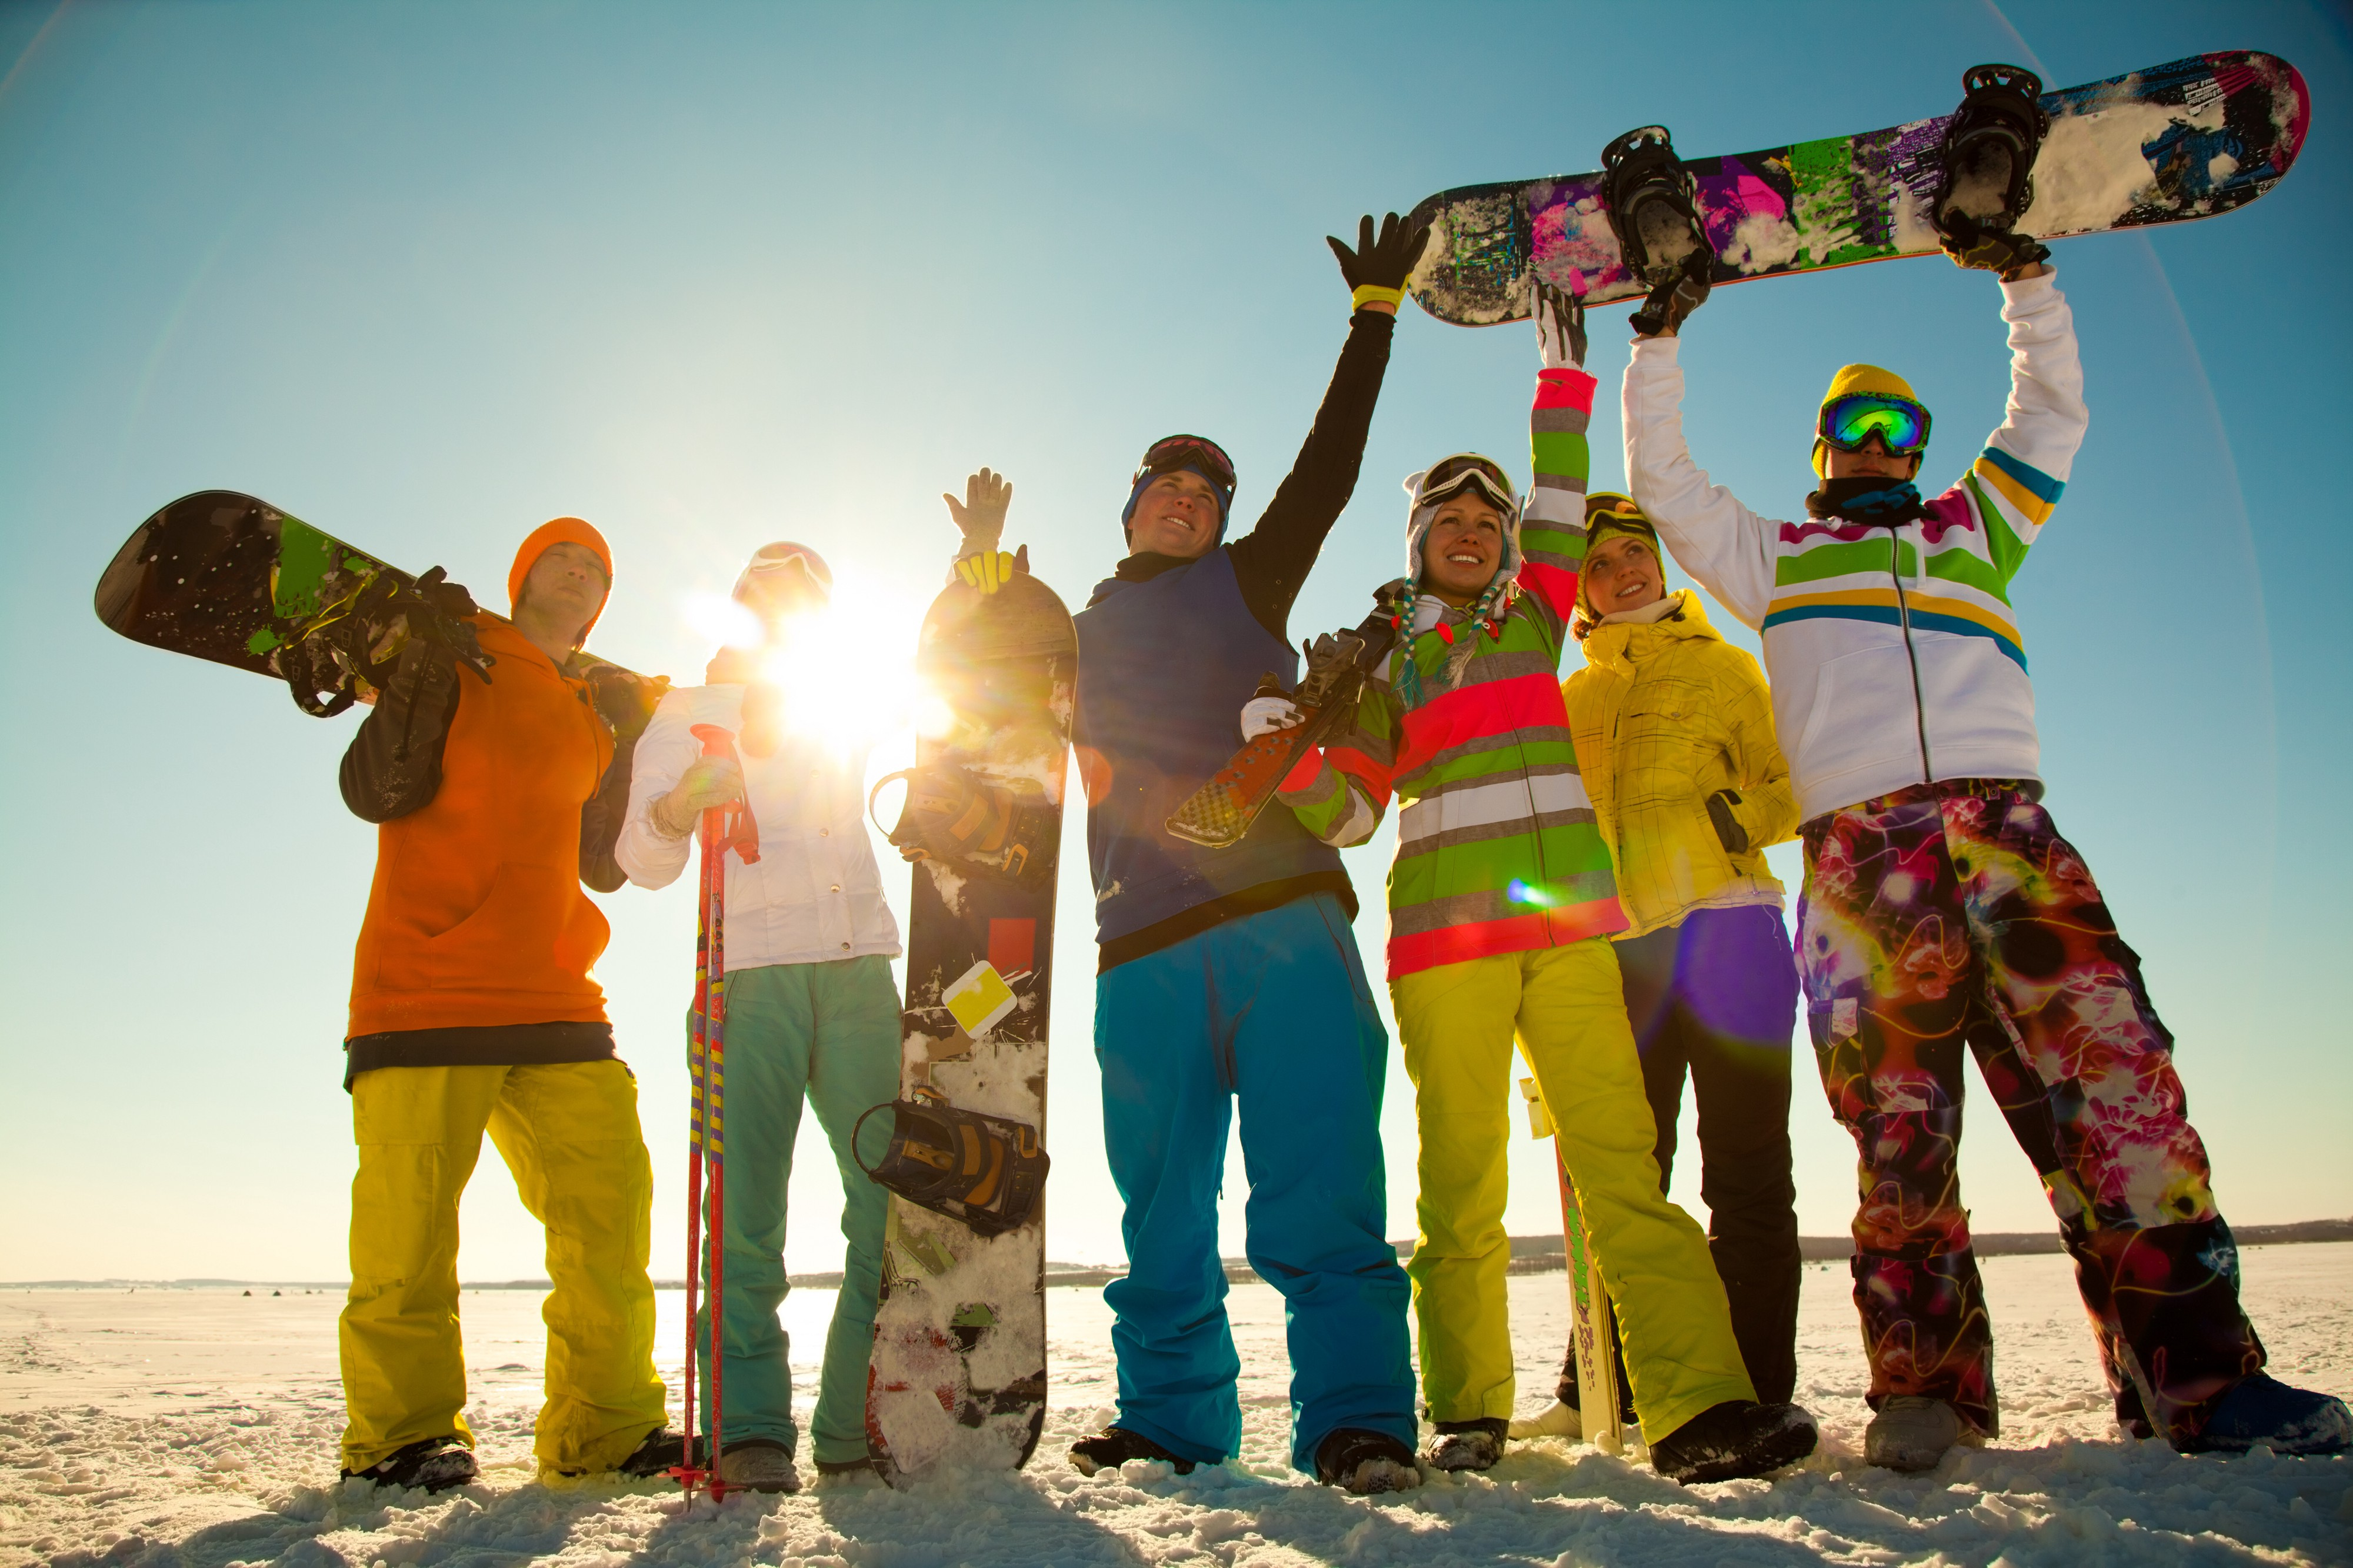 Group of snowboarding friends